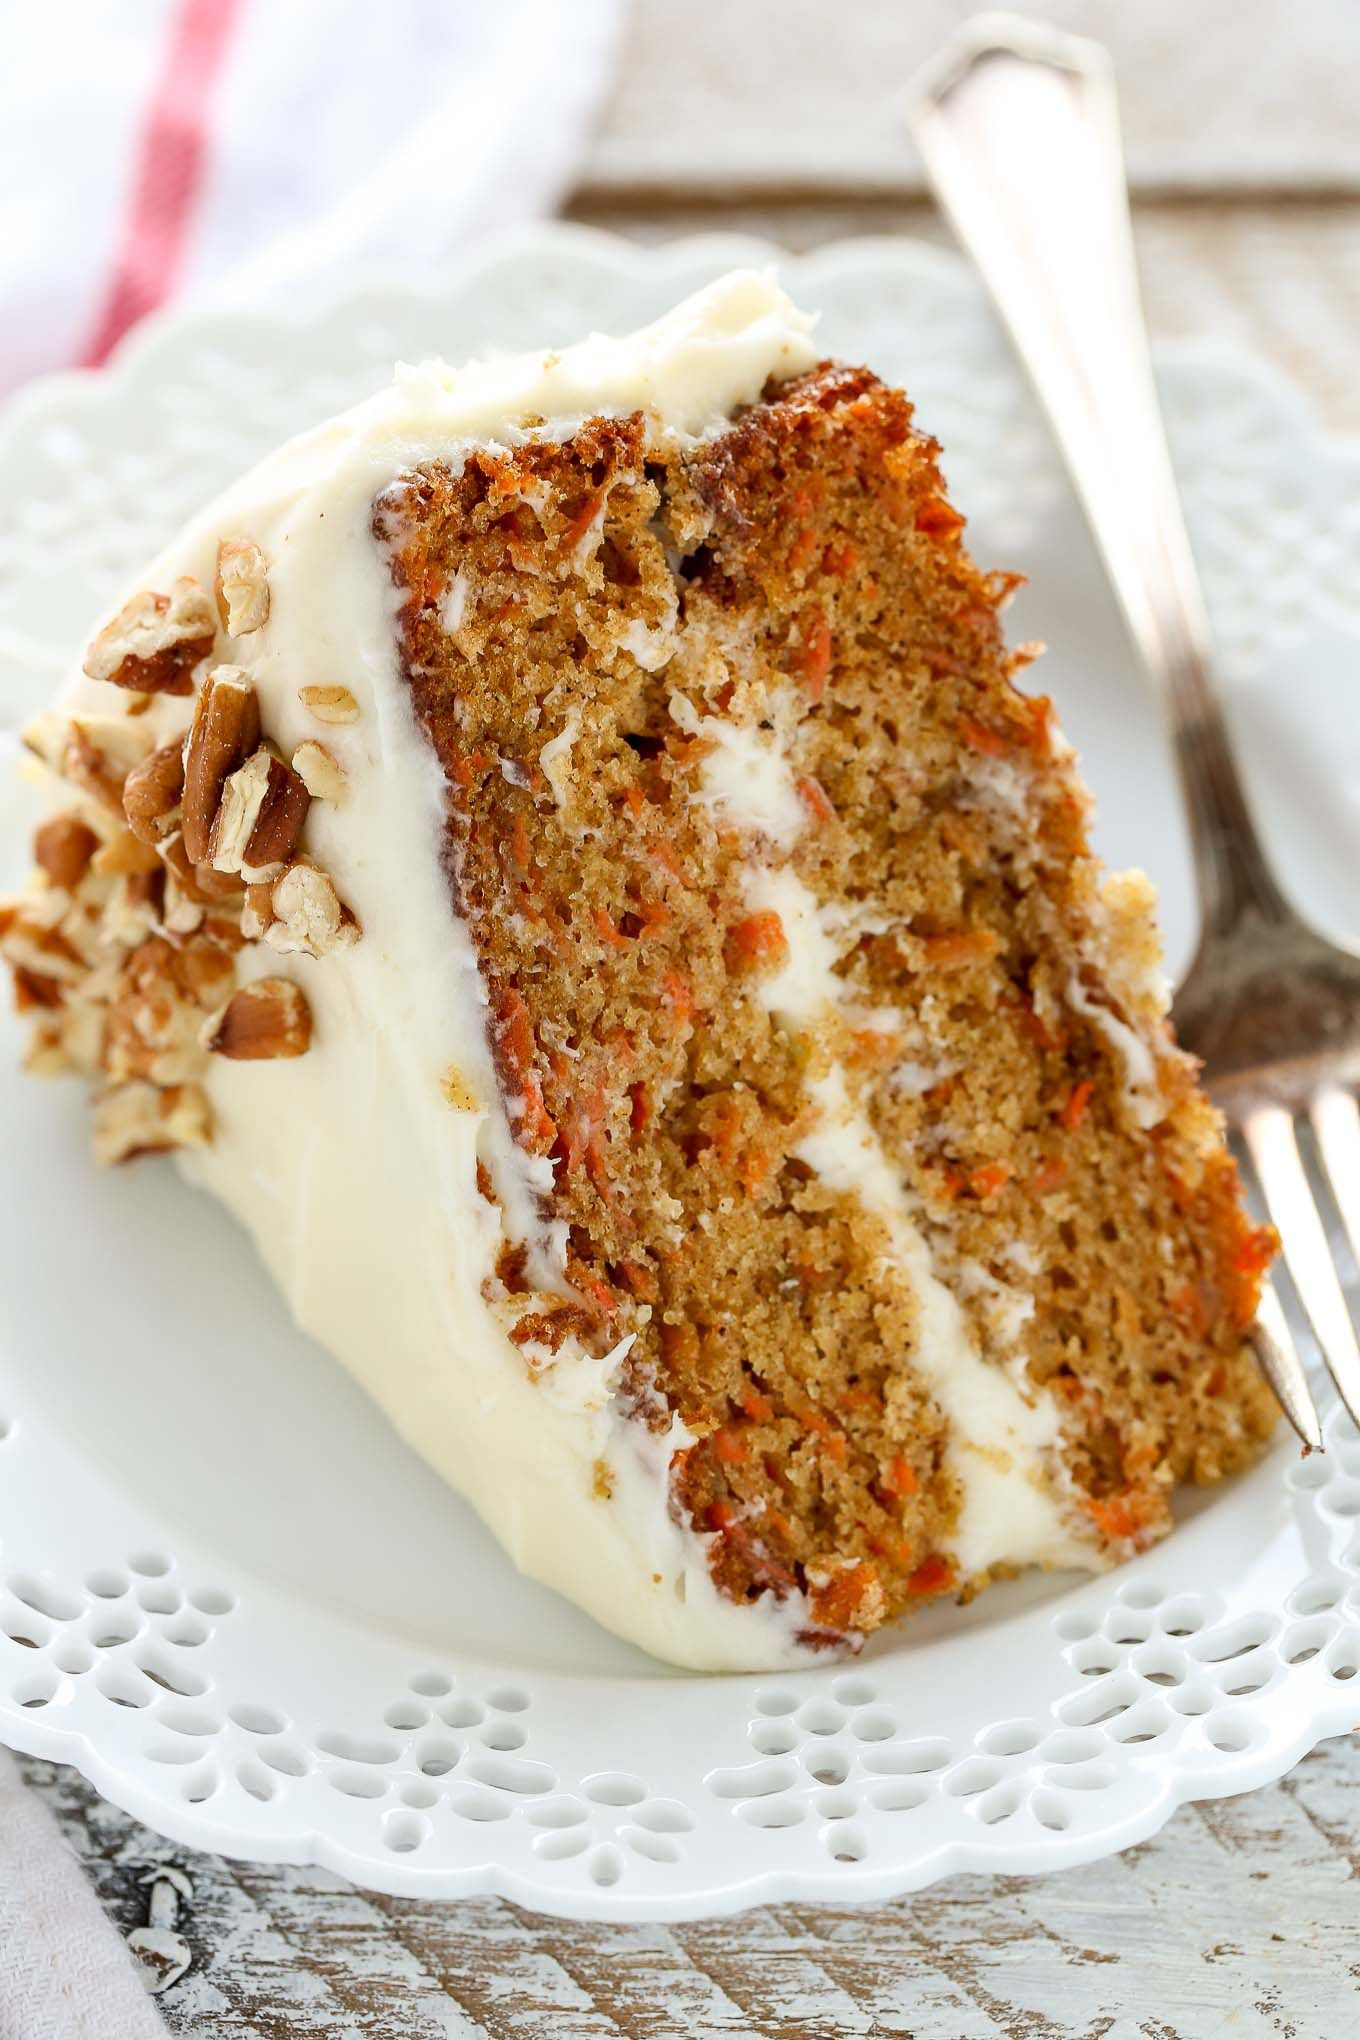 This Is My Favorite Recipe For Homemade Carrot Cake This Cake Is So Easy To Make Per Carrot Cake Recipe Homemade Carrot Cake Recipe Easy Homemade Carrot Cake